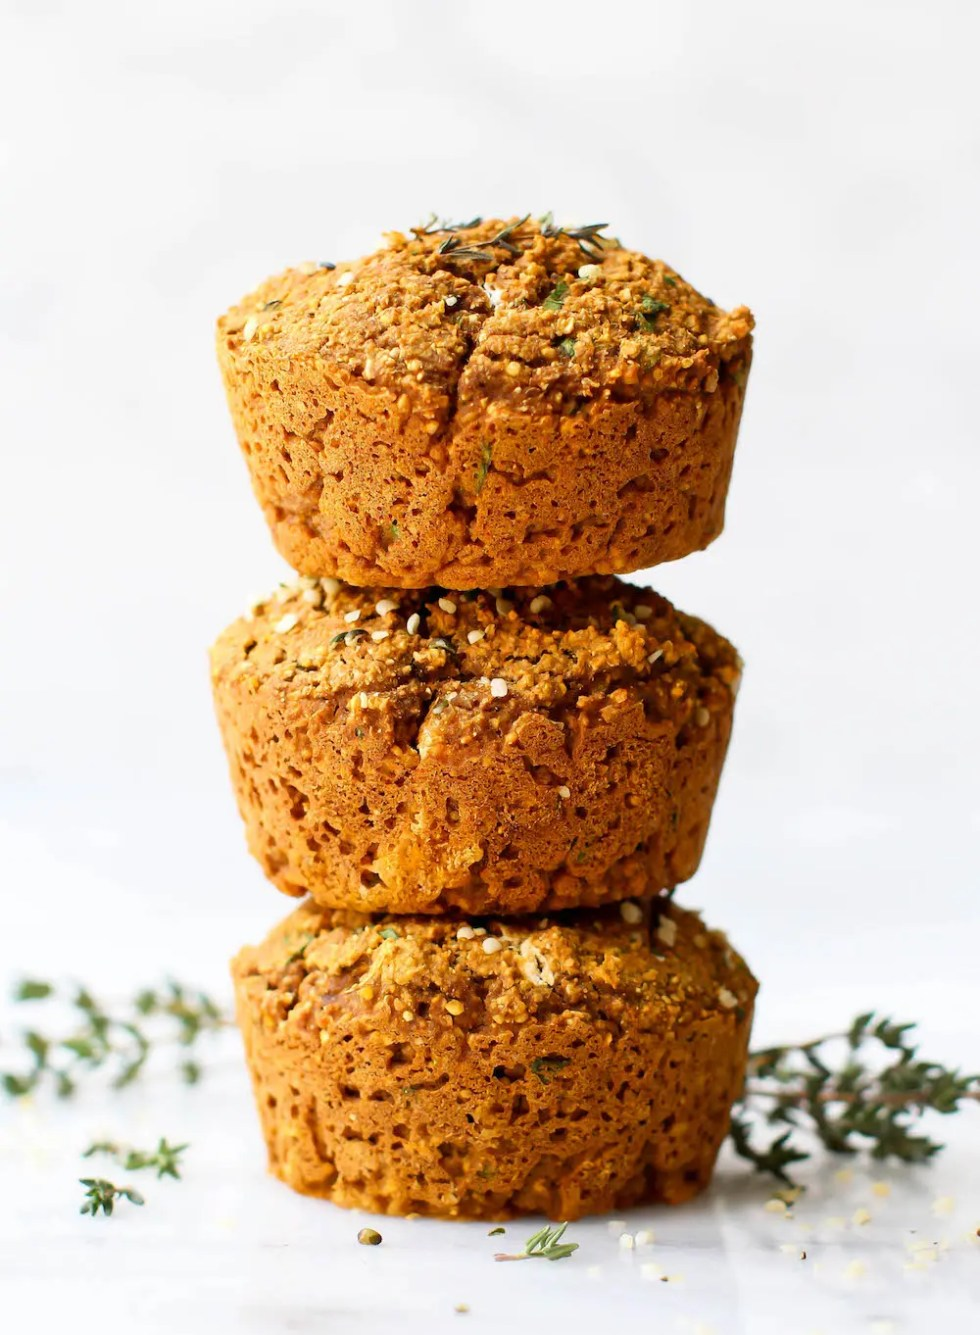 Sweet Potato & Herb Savory Muffins | Vegan, Gluten-Free, Oil-Free